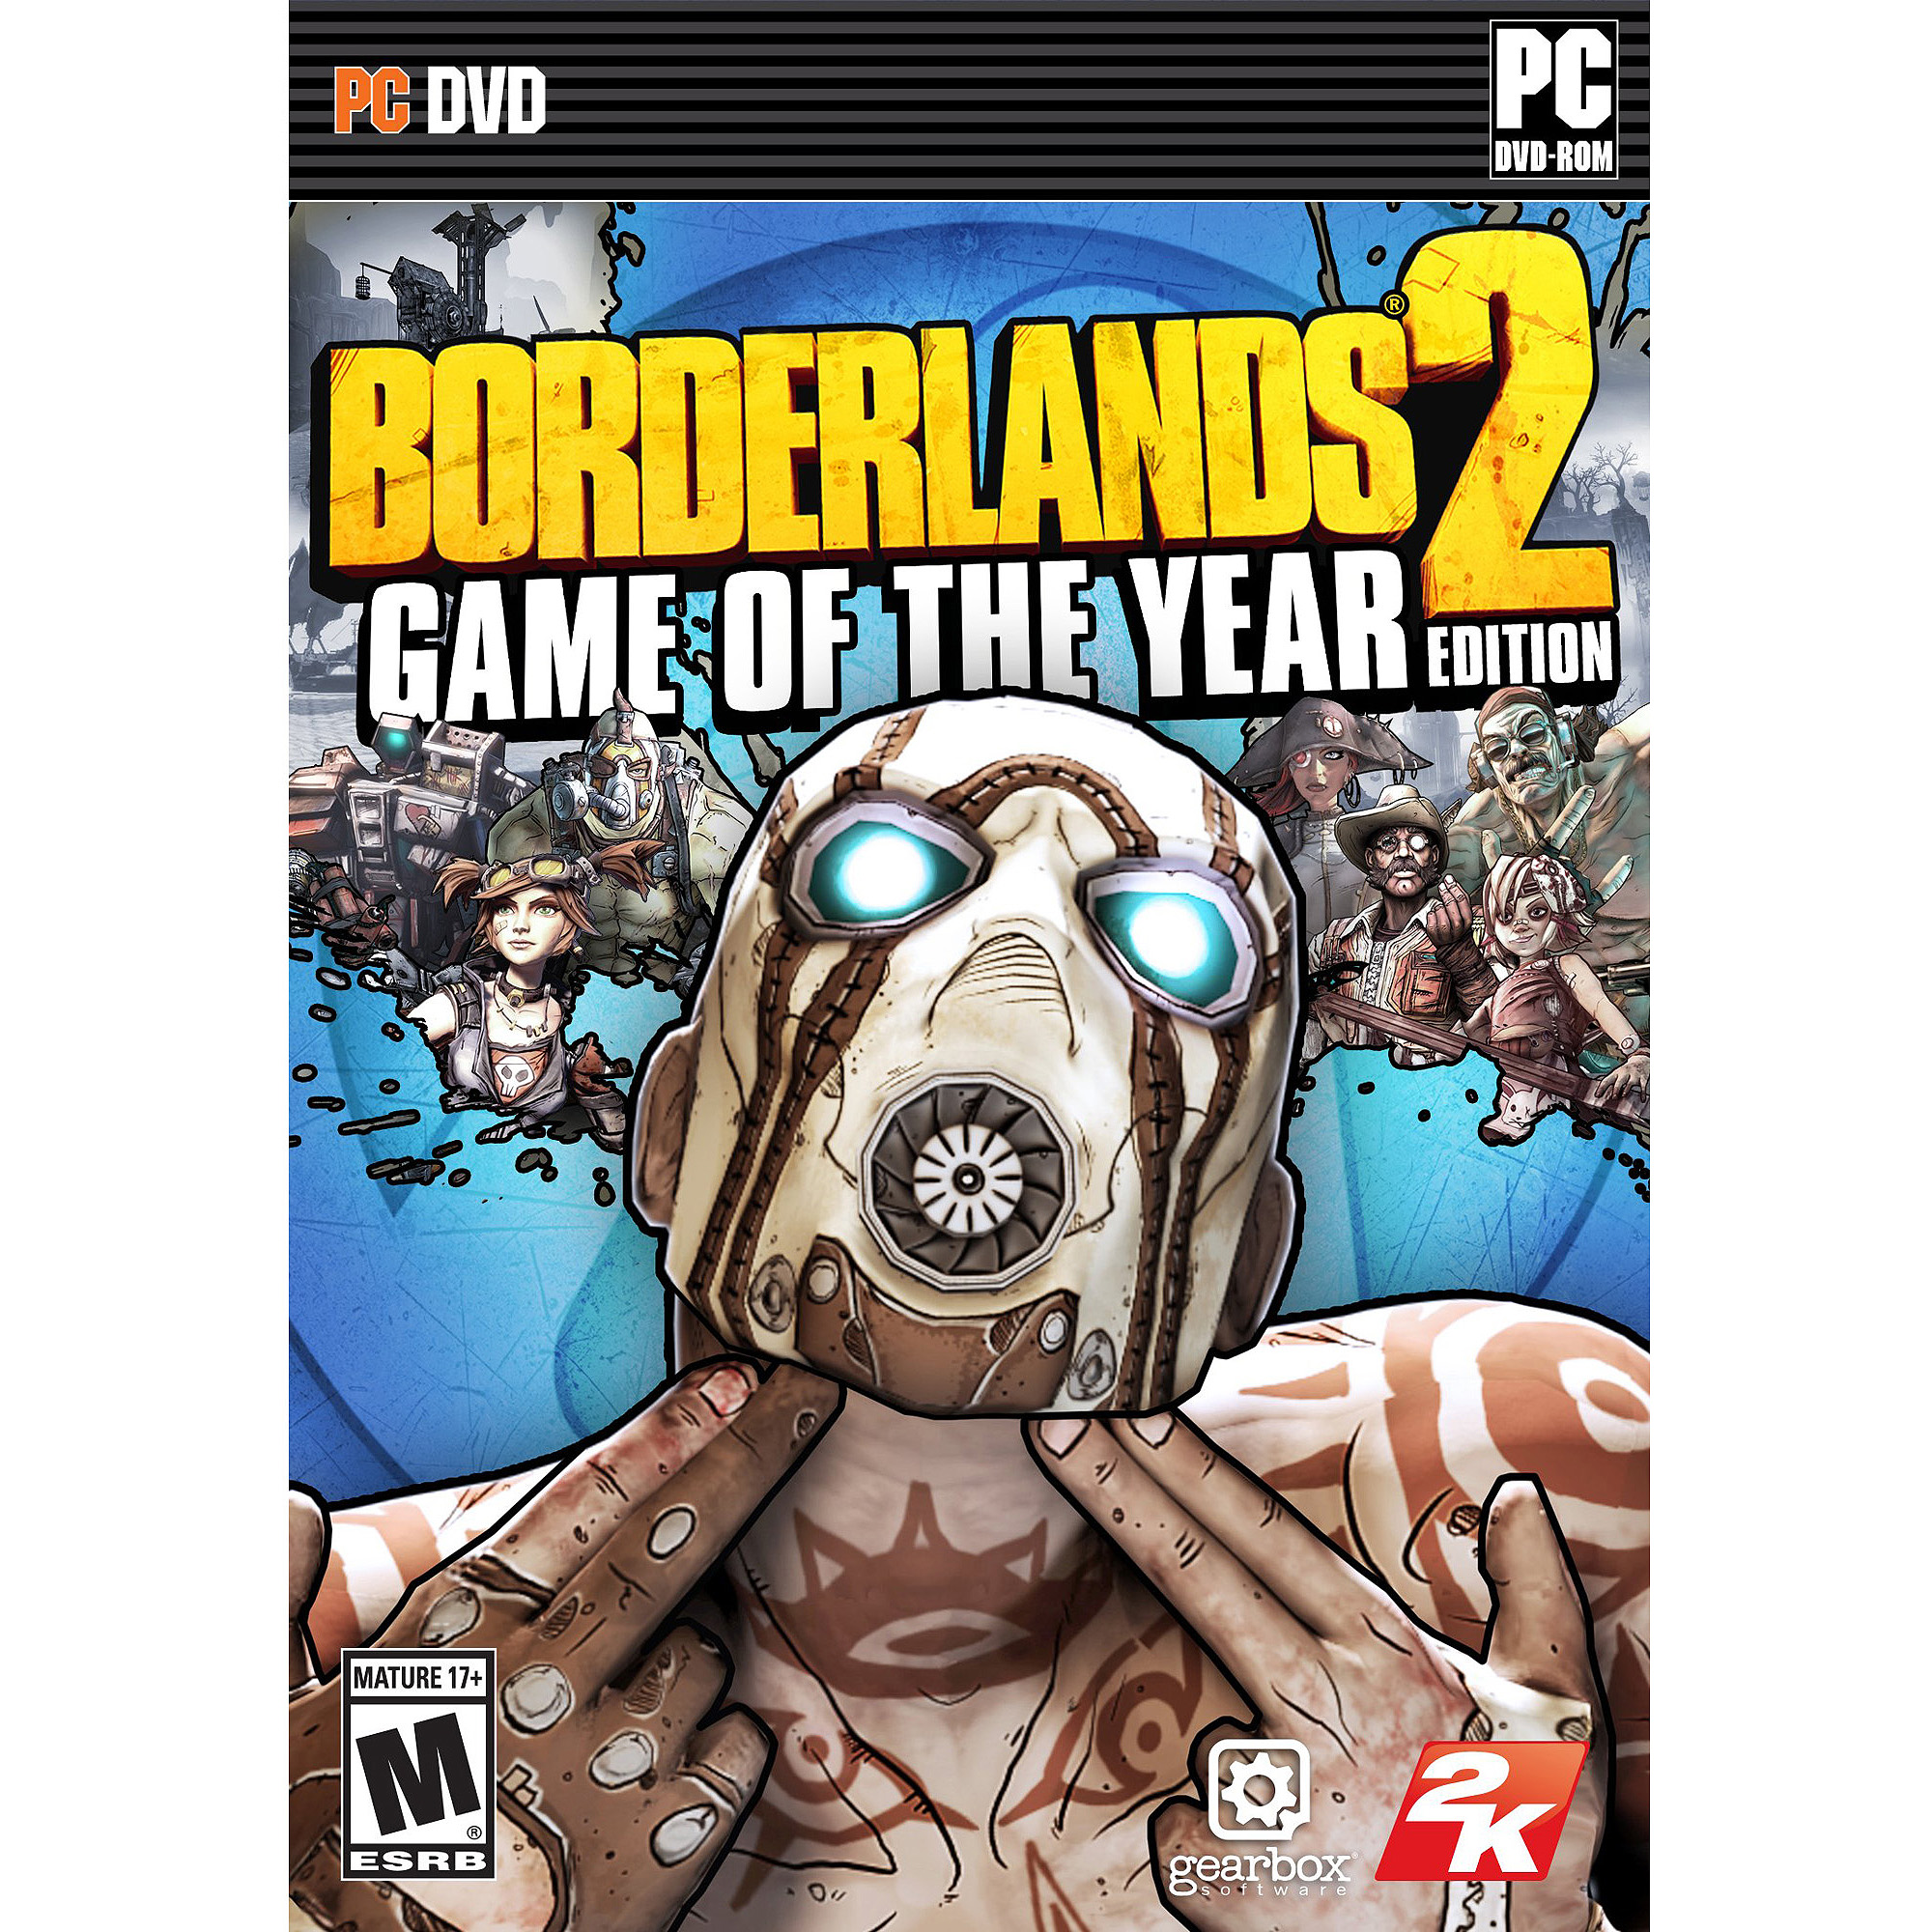 Borderlands 2: Game of the Year Edition (Digital Code) (PC)